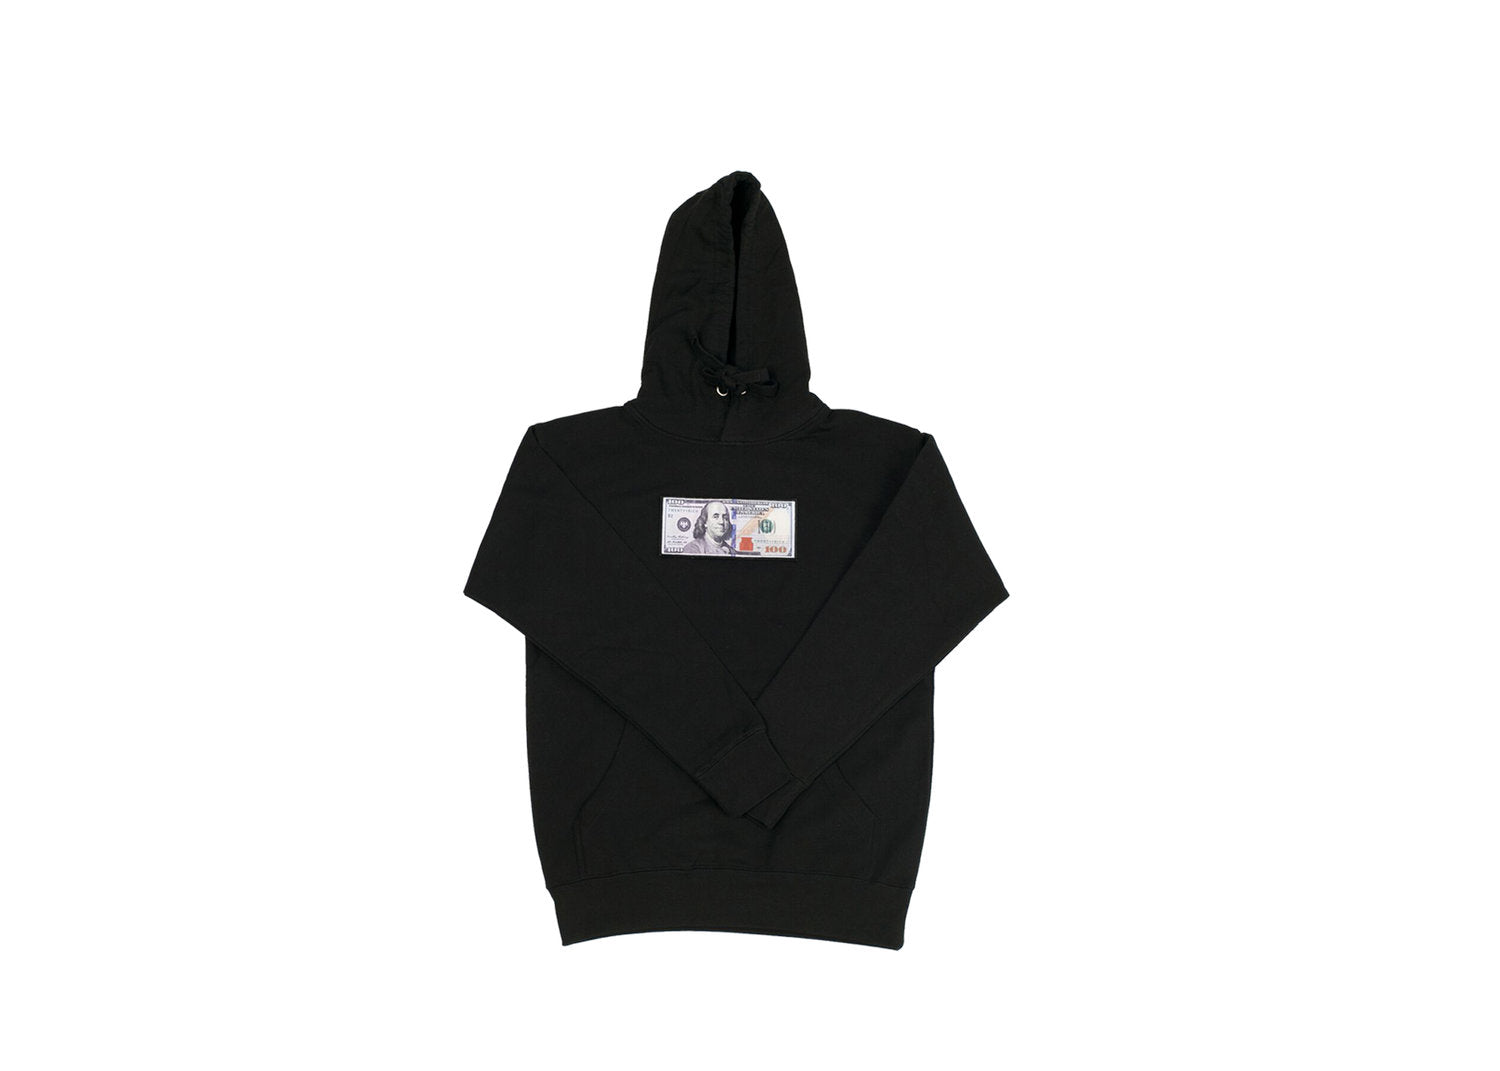 Black Hoodie with a $100 logo